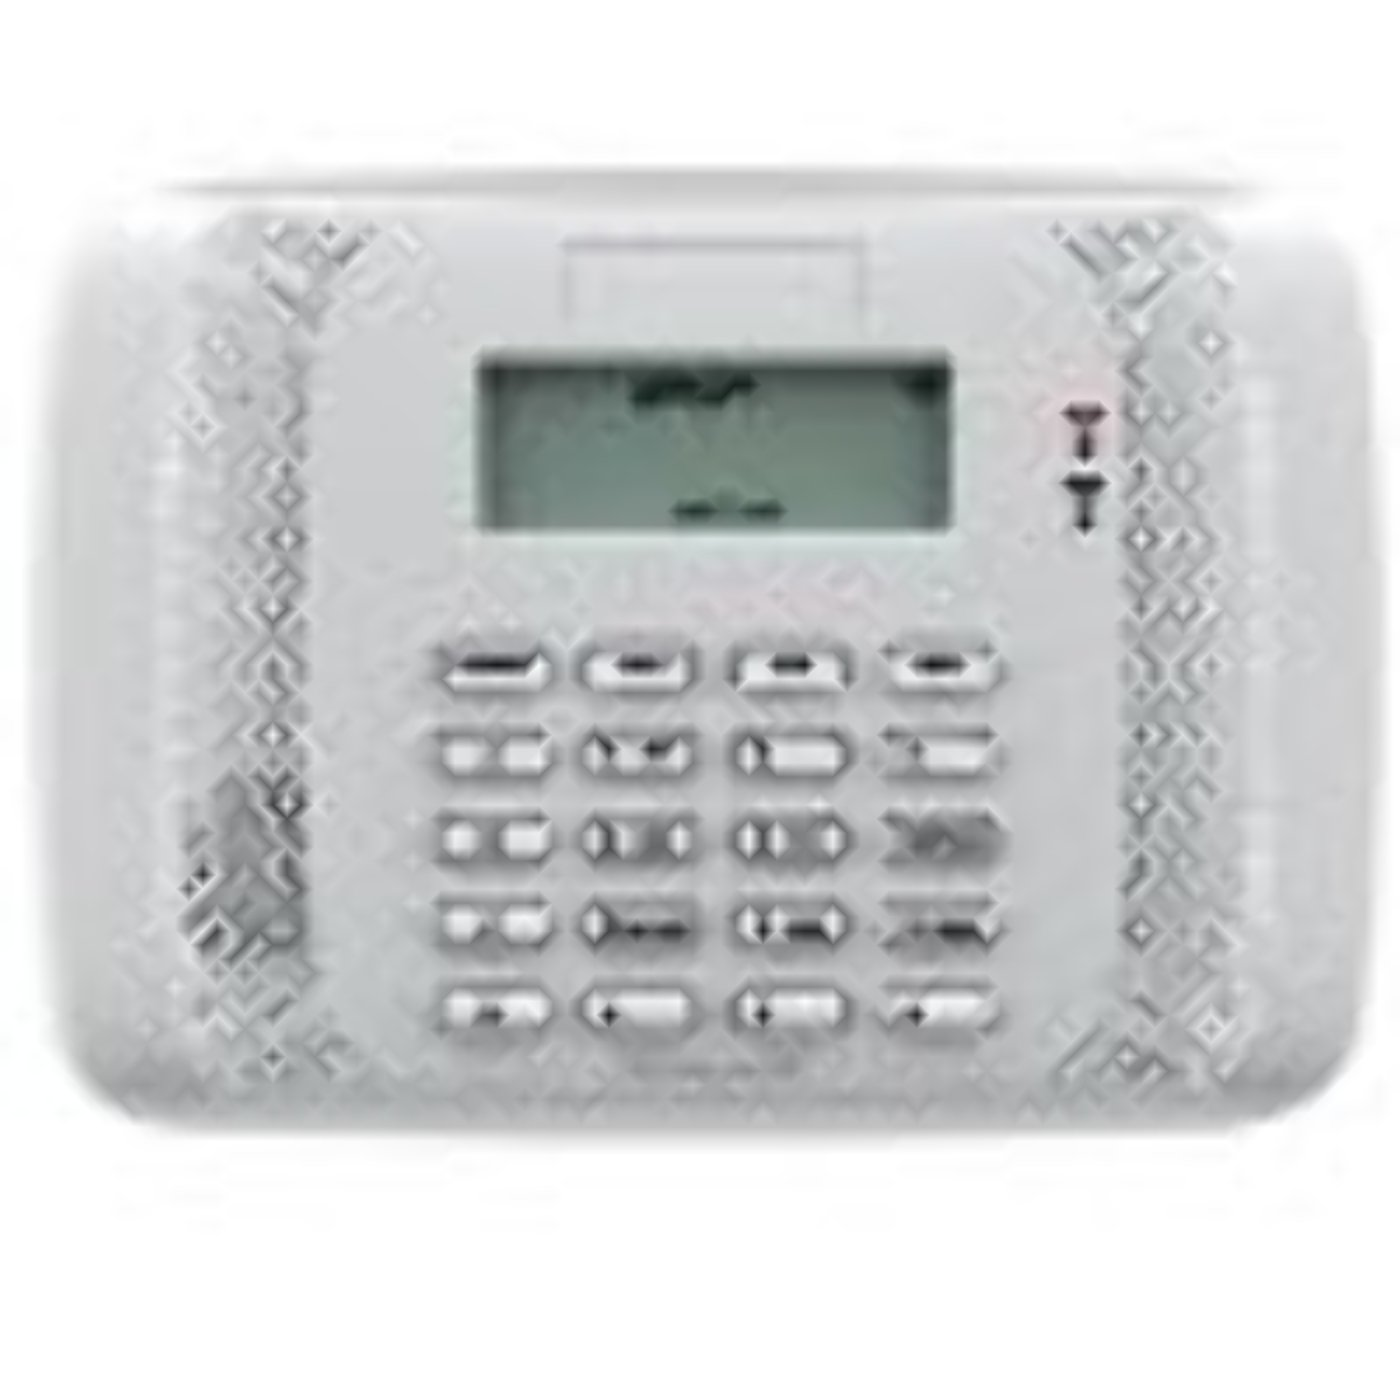 amazon com honeywell 6152 fixed english security keypad replacement rh amazon com 6150 keypad installation manual ademco 6150 keypad installation manual